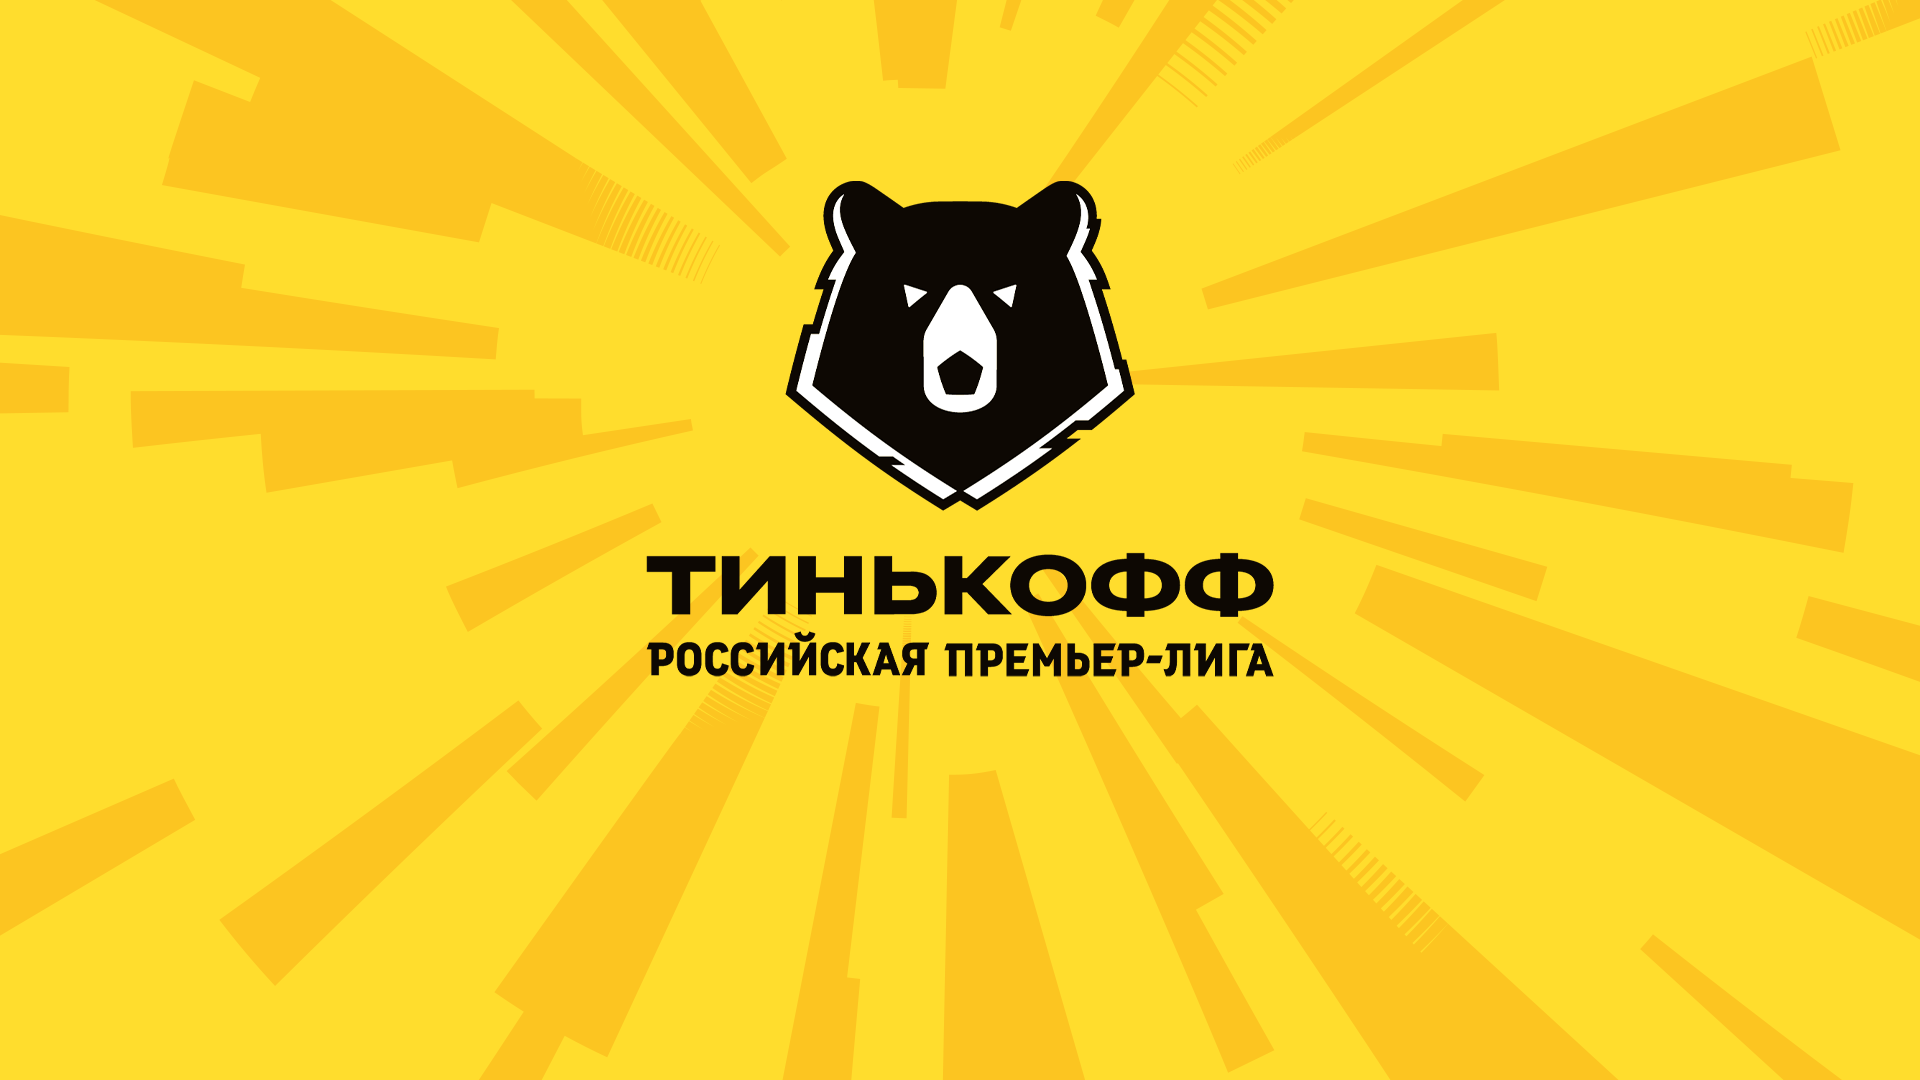 Tinkoff named title partner of the Russian Premier Liga